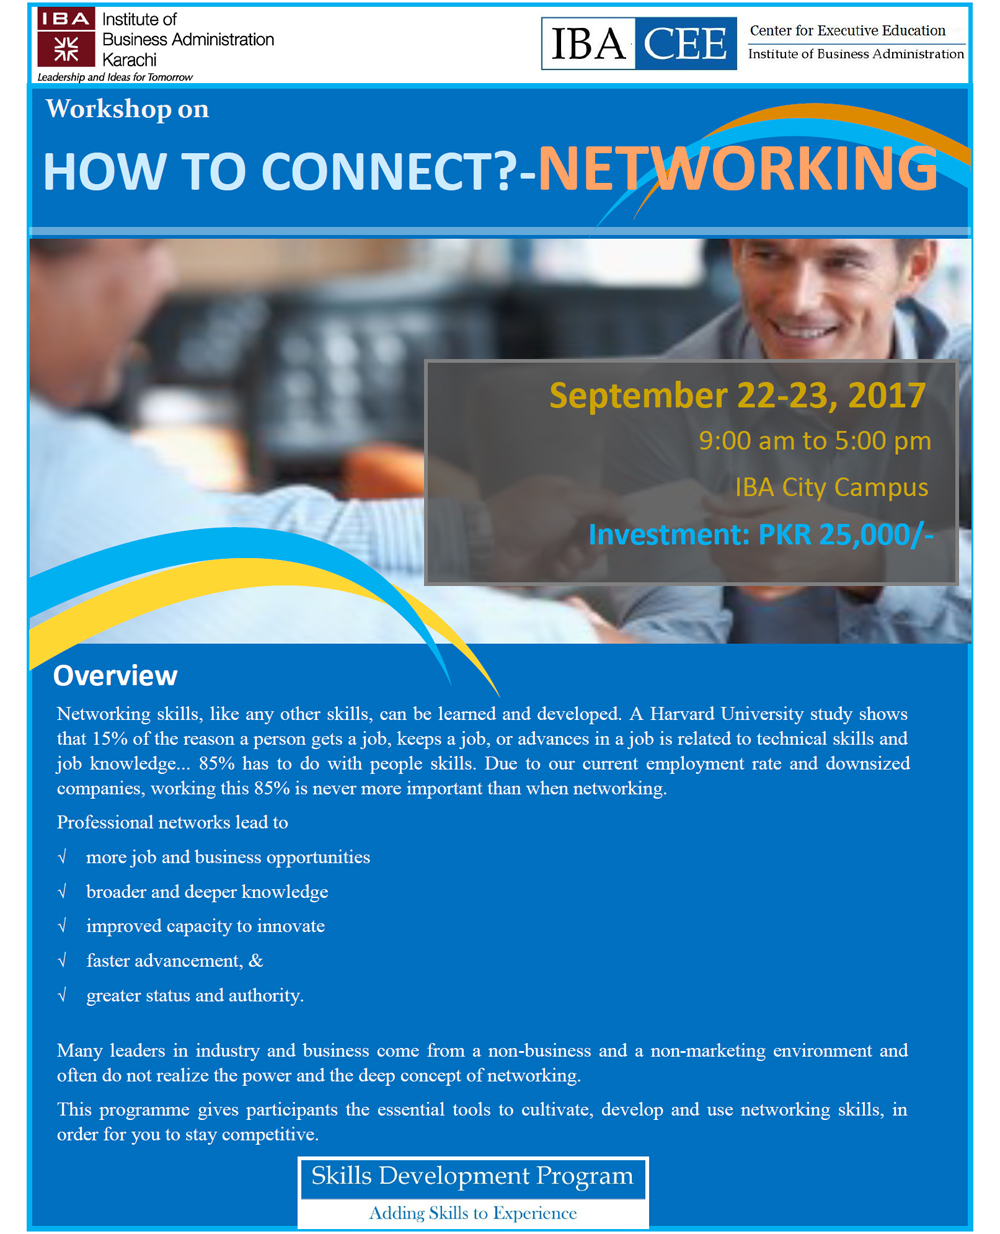 HOW TO CONNECT?-NETWORKING